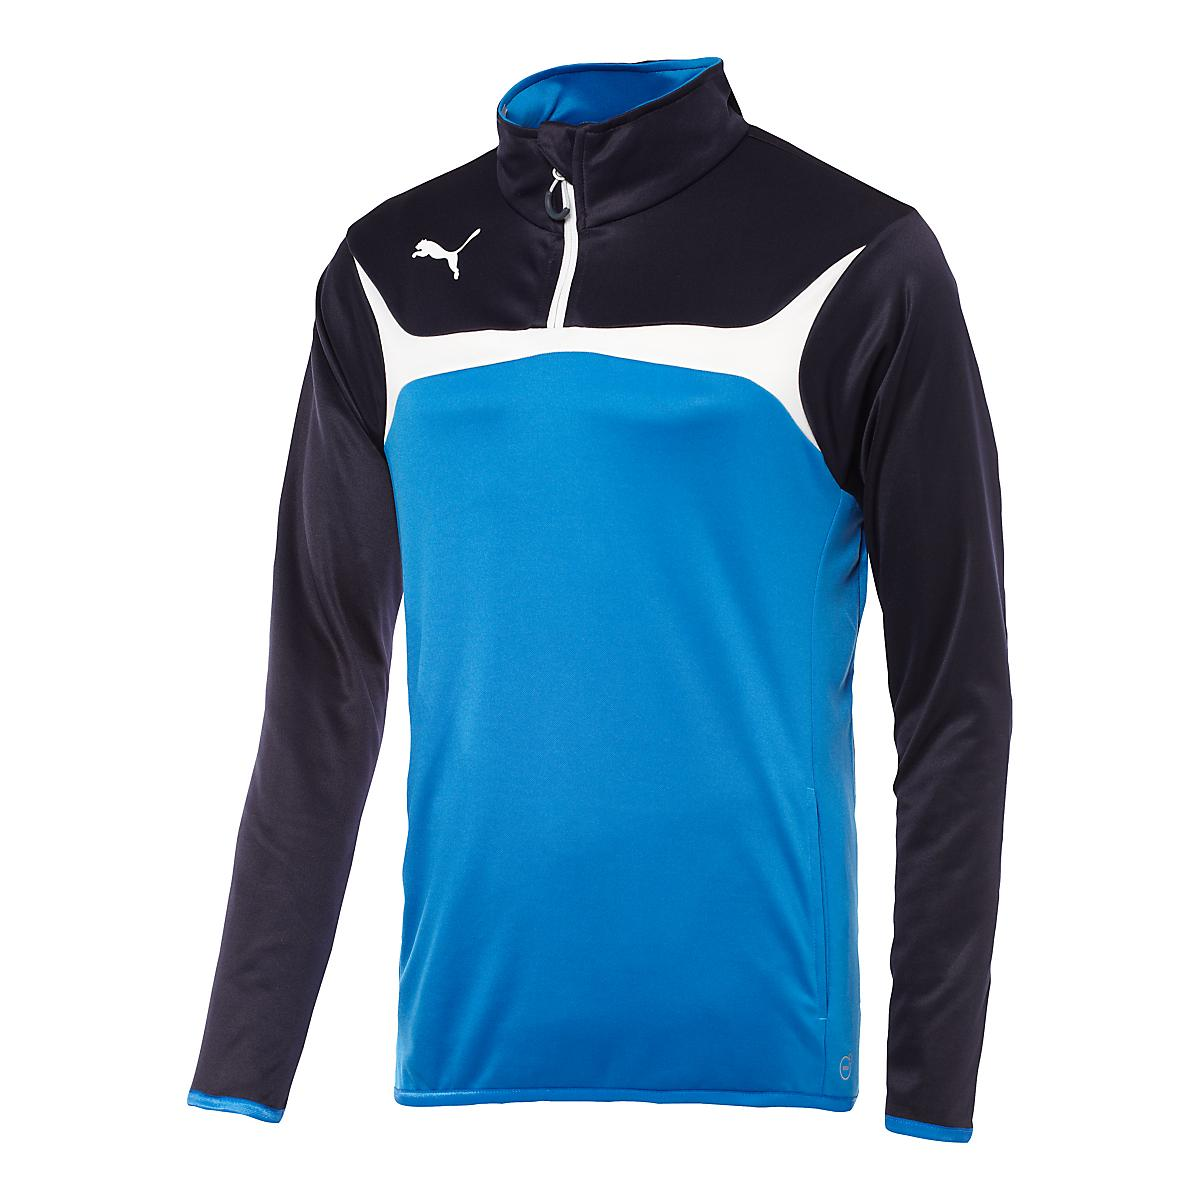 Kids Puma�Esito 3 1/4 Zip Training Jacket